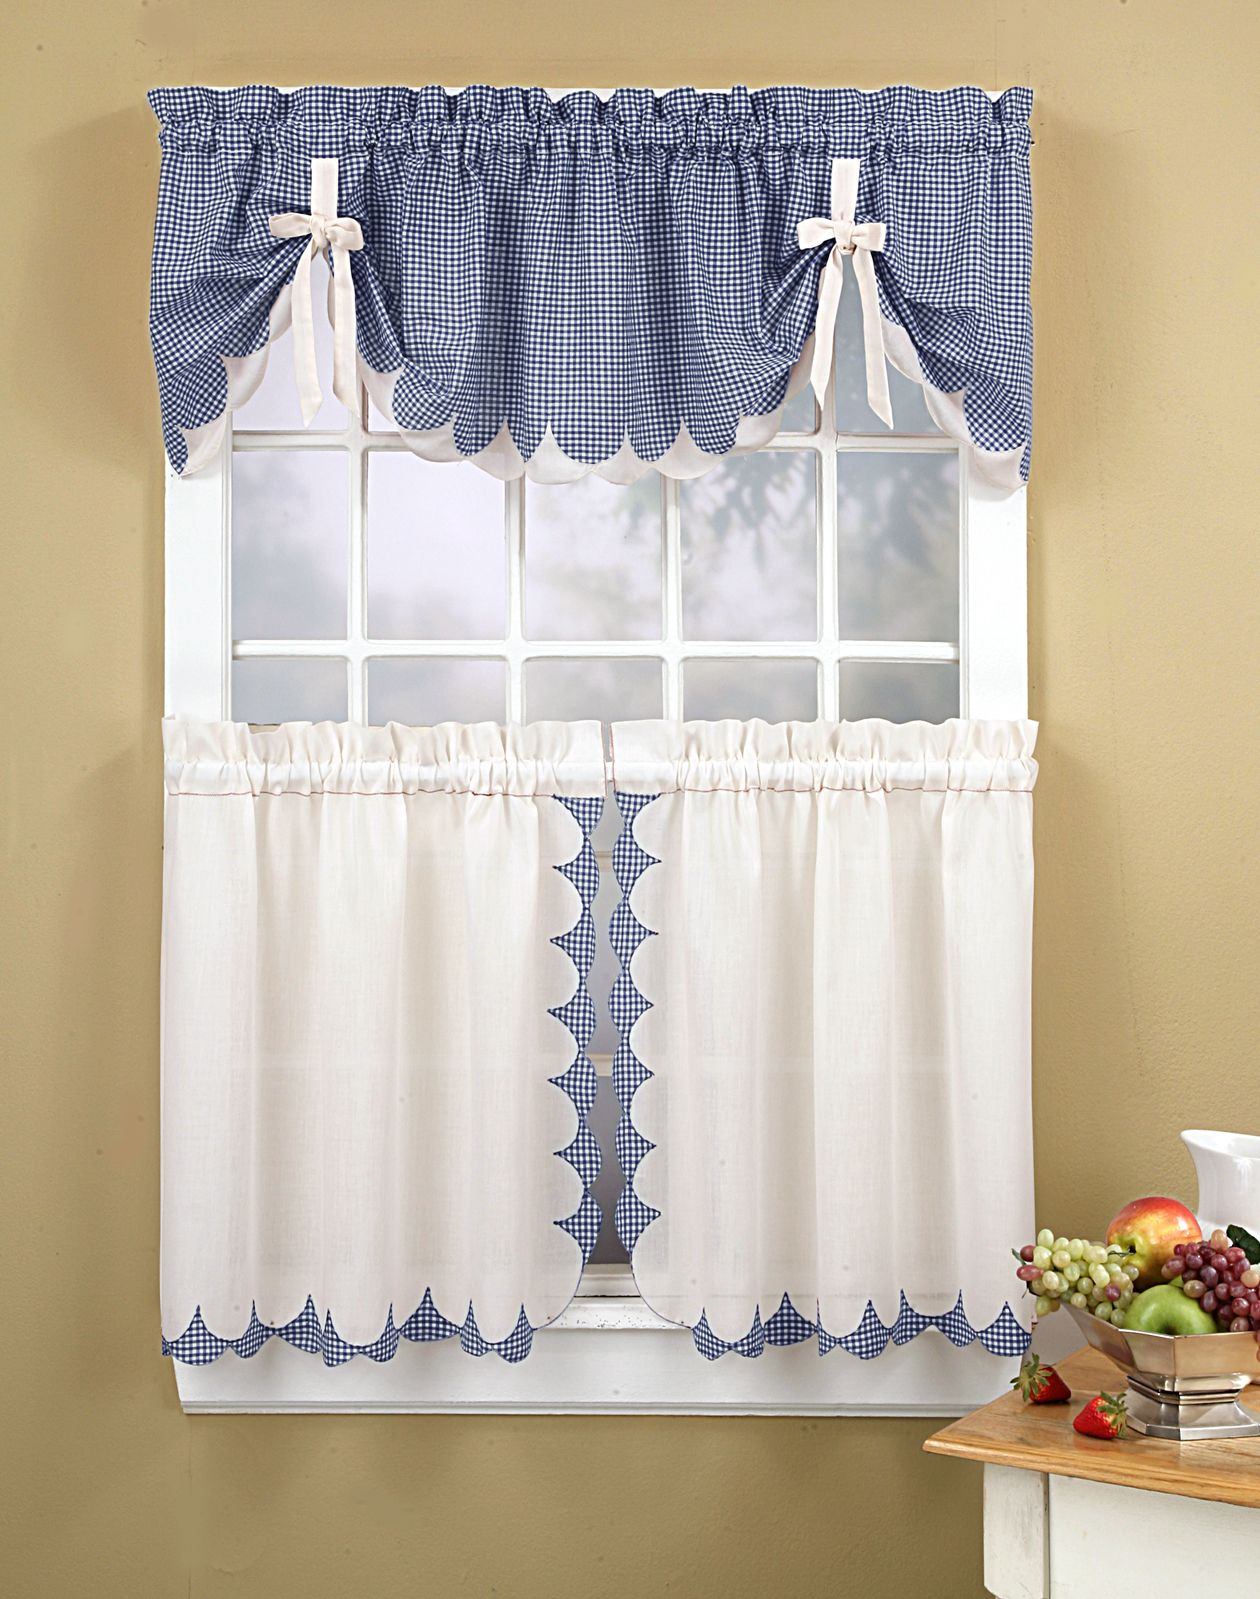 Blue and white kitchen curtains - Kitchen Curtains Tabitha 3 Piece Kitchen Curtain Tier Set Curtainworks Com I